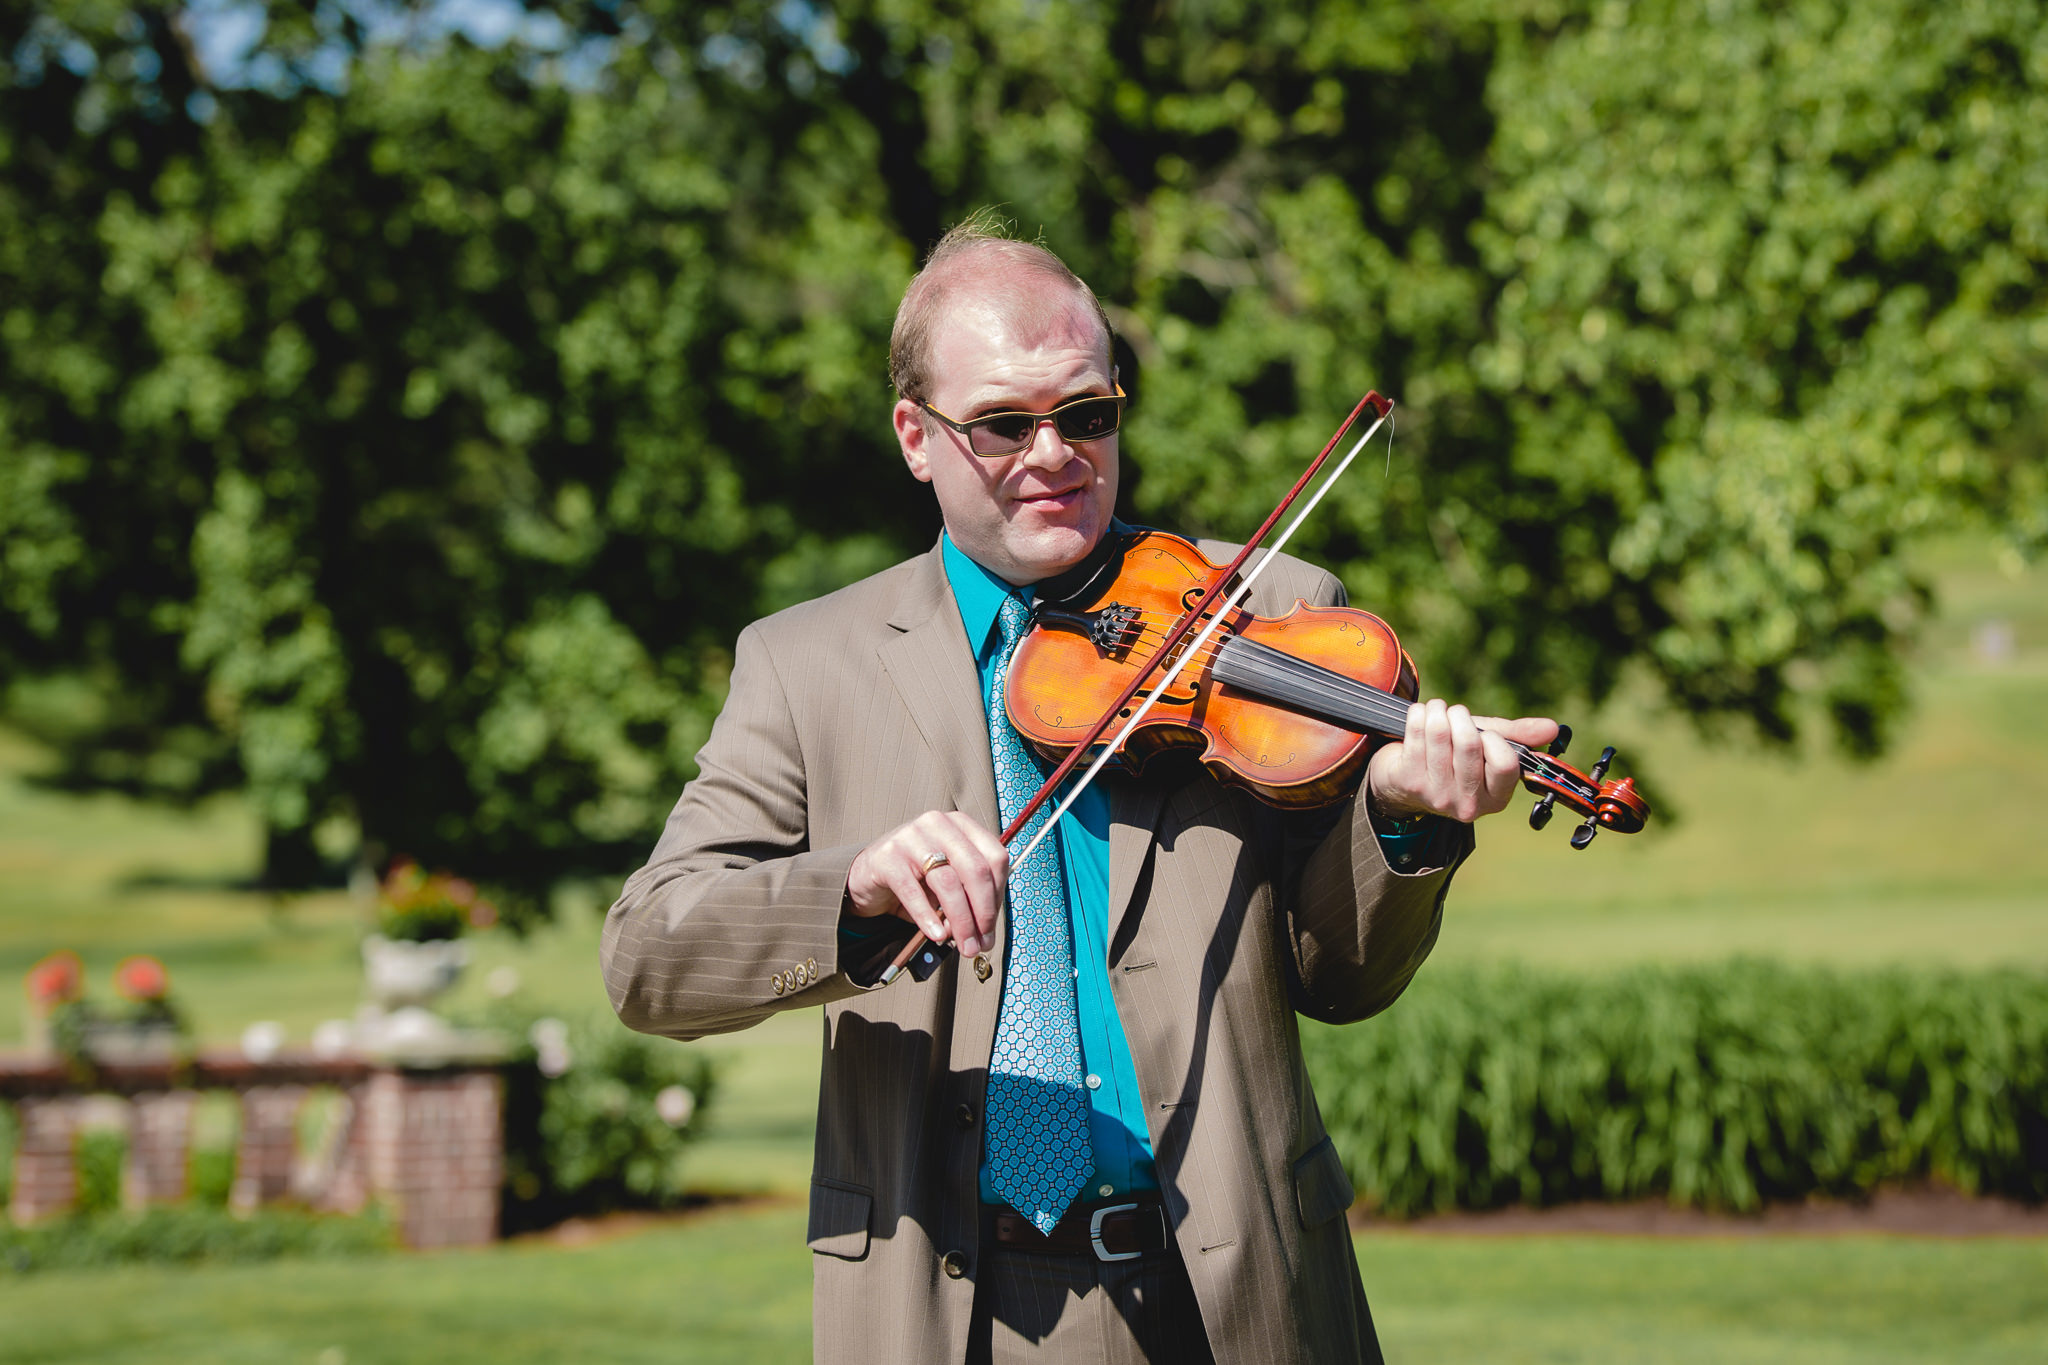 Violinist plays music during a wedding ceremony at Linden Hall